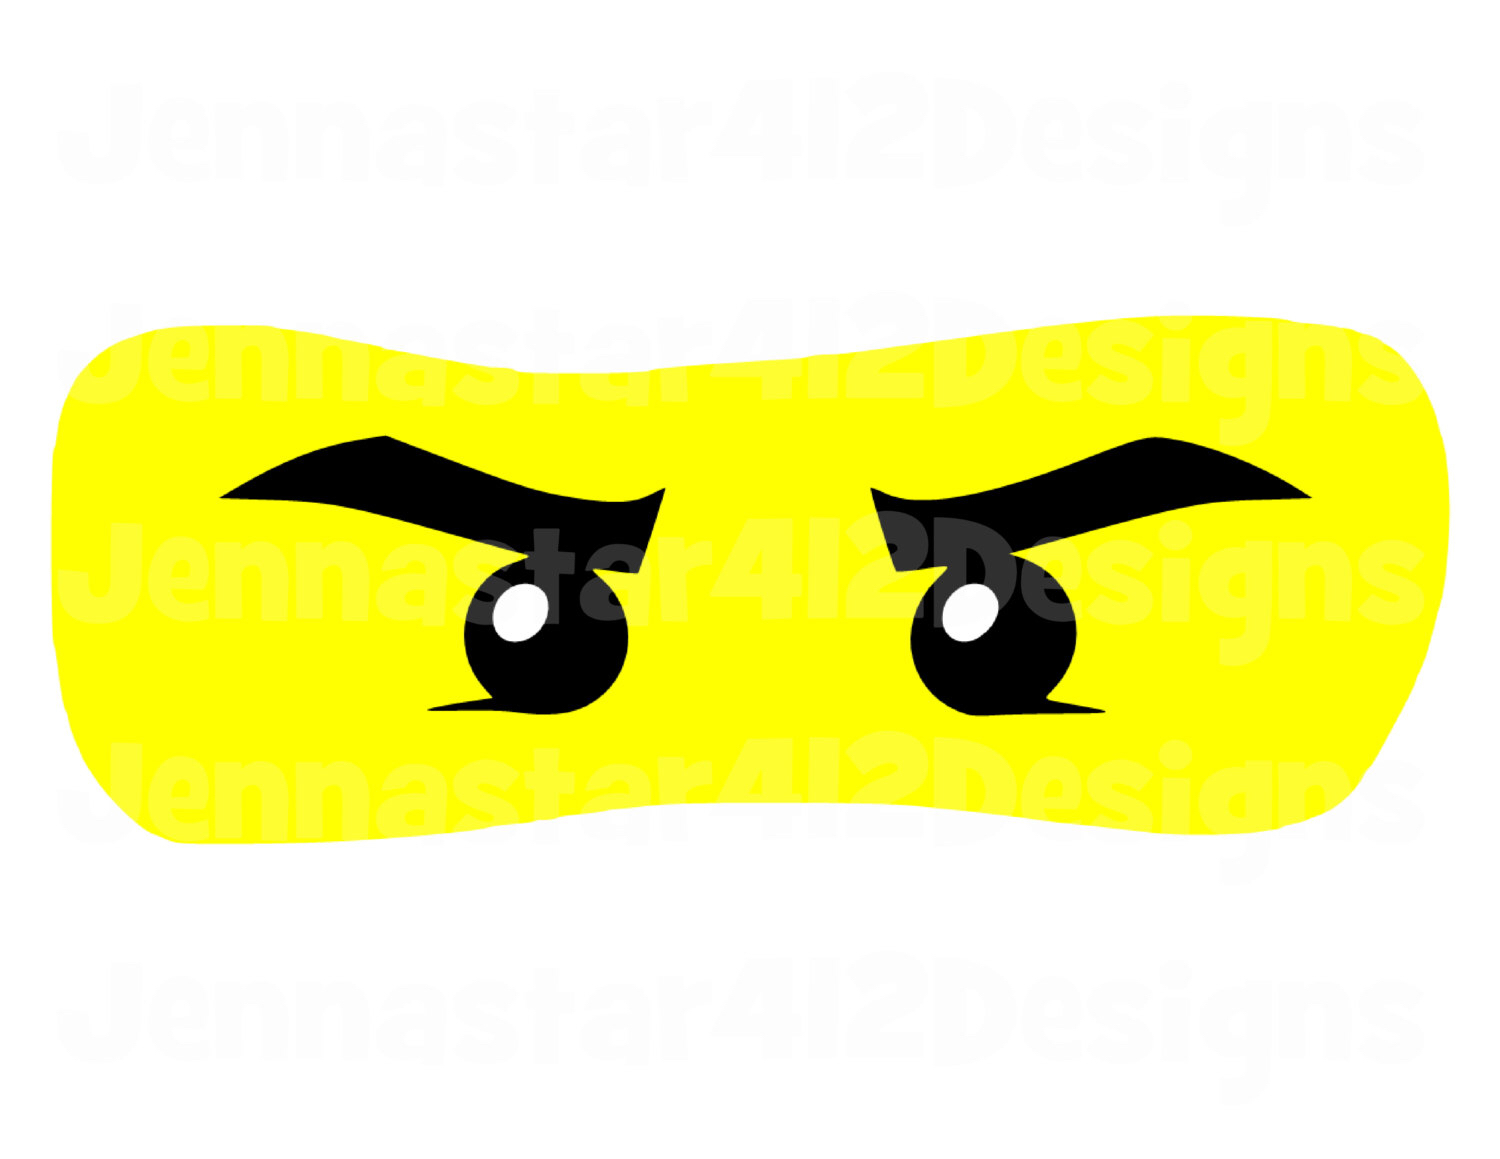 Lego Inspired Ninjago Eyes DIY Printable Iron On Transfer Digital.